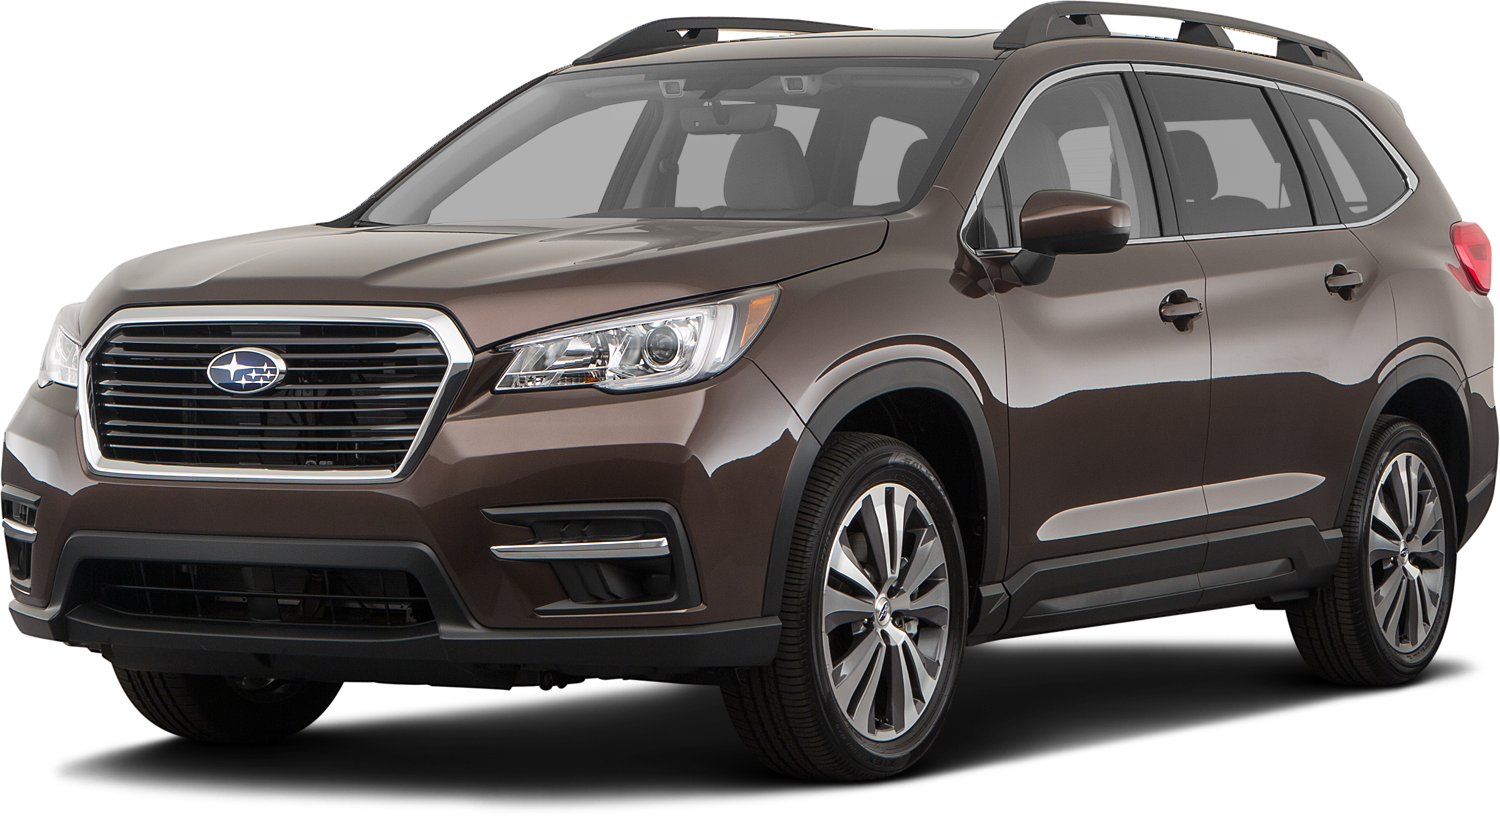 Subaru Ascent SUV Lease Image